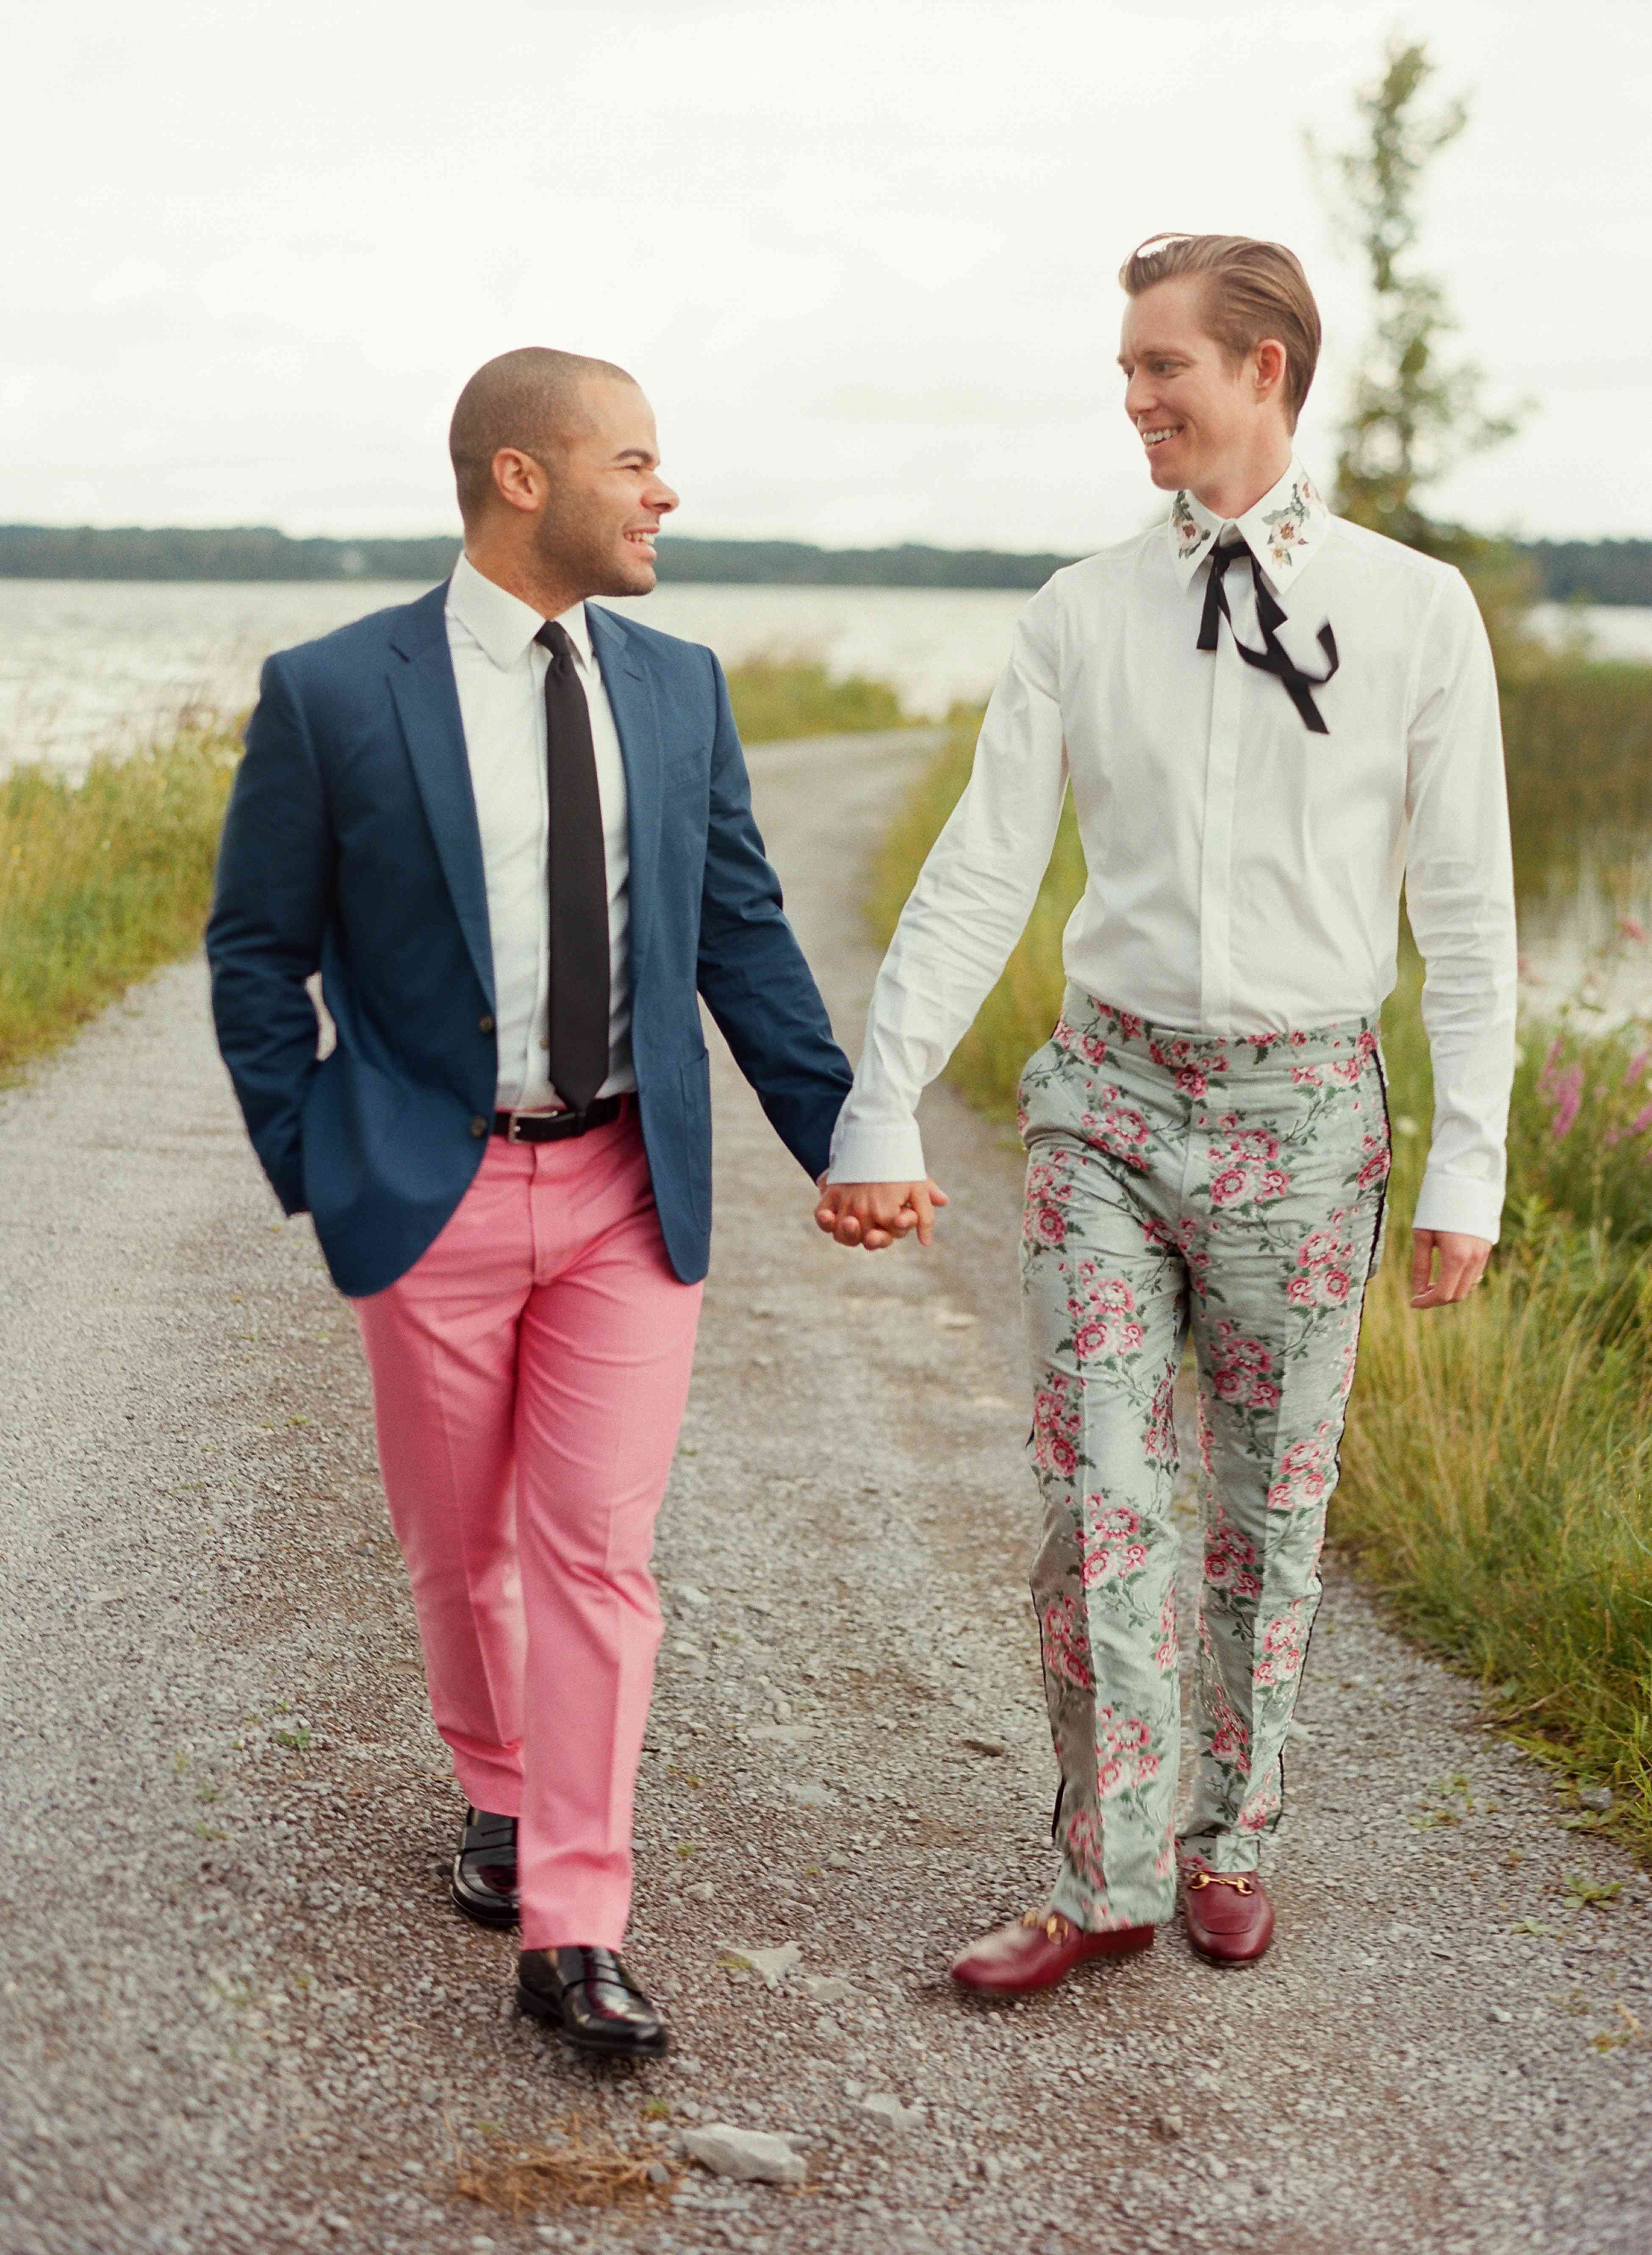 Grooms holding hands